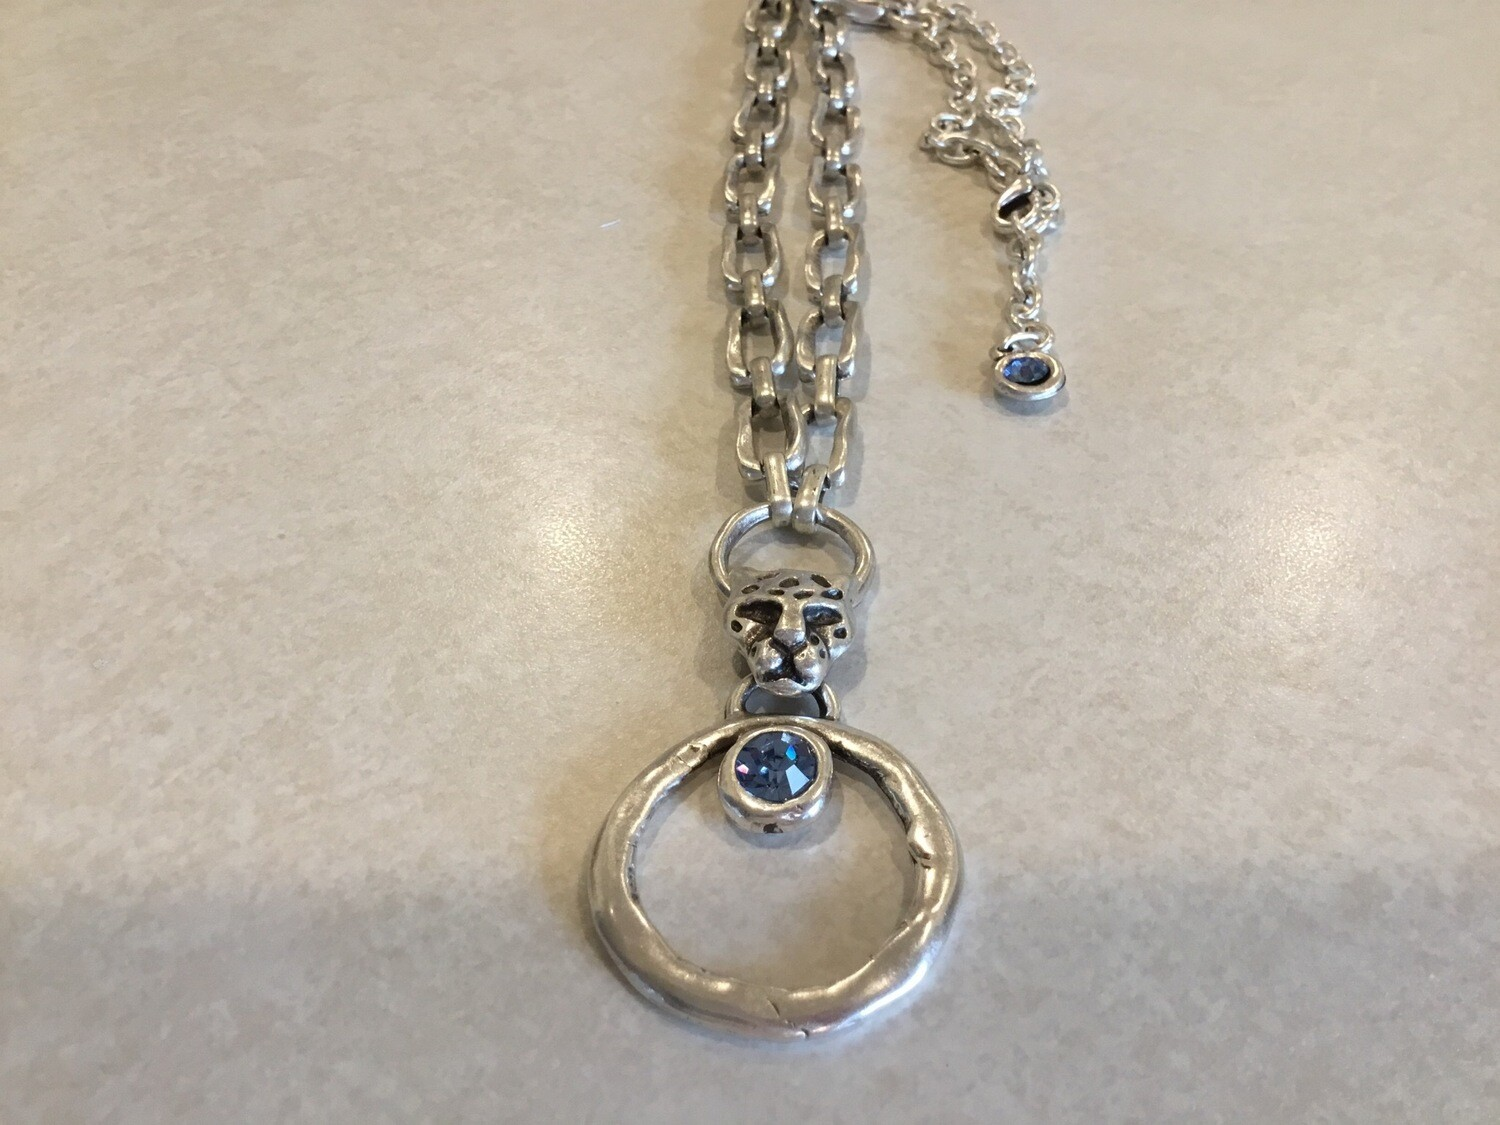 Handmade Long Necklace With Cheetah And Blue Crystals